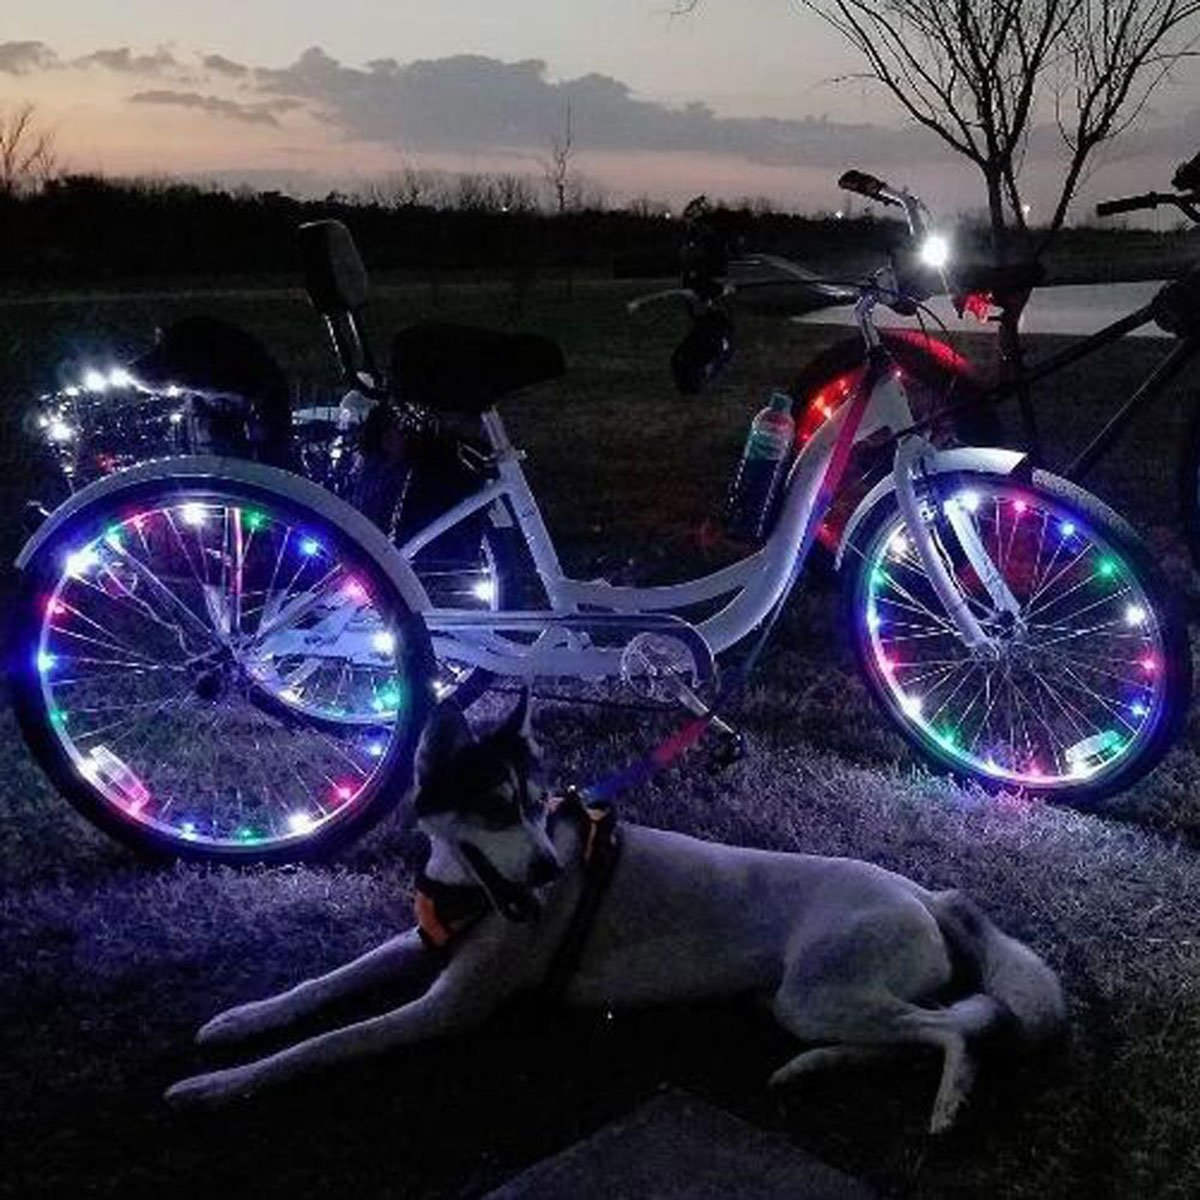 DIMY Bike Wheel Lights, LED Bike Wheel Light for Boys Toys for 5-16 Year Old Boys 5-14 Year Old Boy Gifts for Teen Girl Outdoor Toys Multicolor TTB07 by DIMY (Image #4)